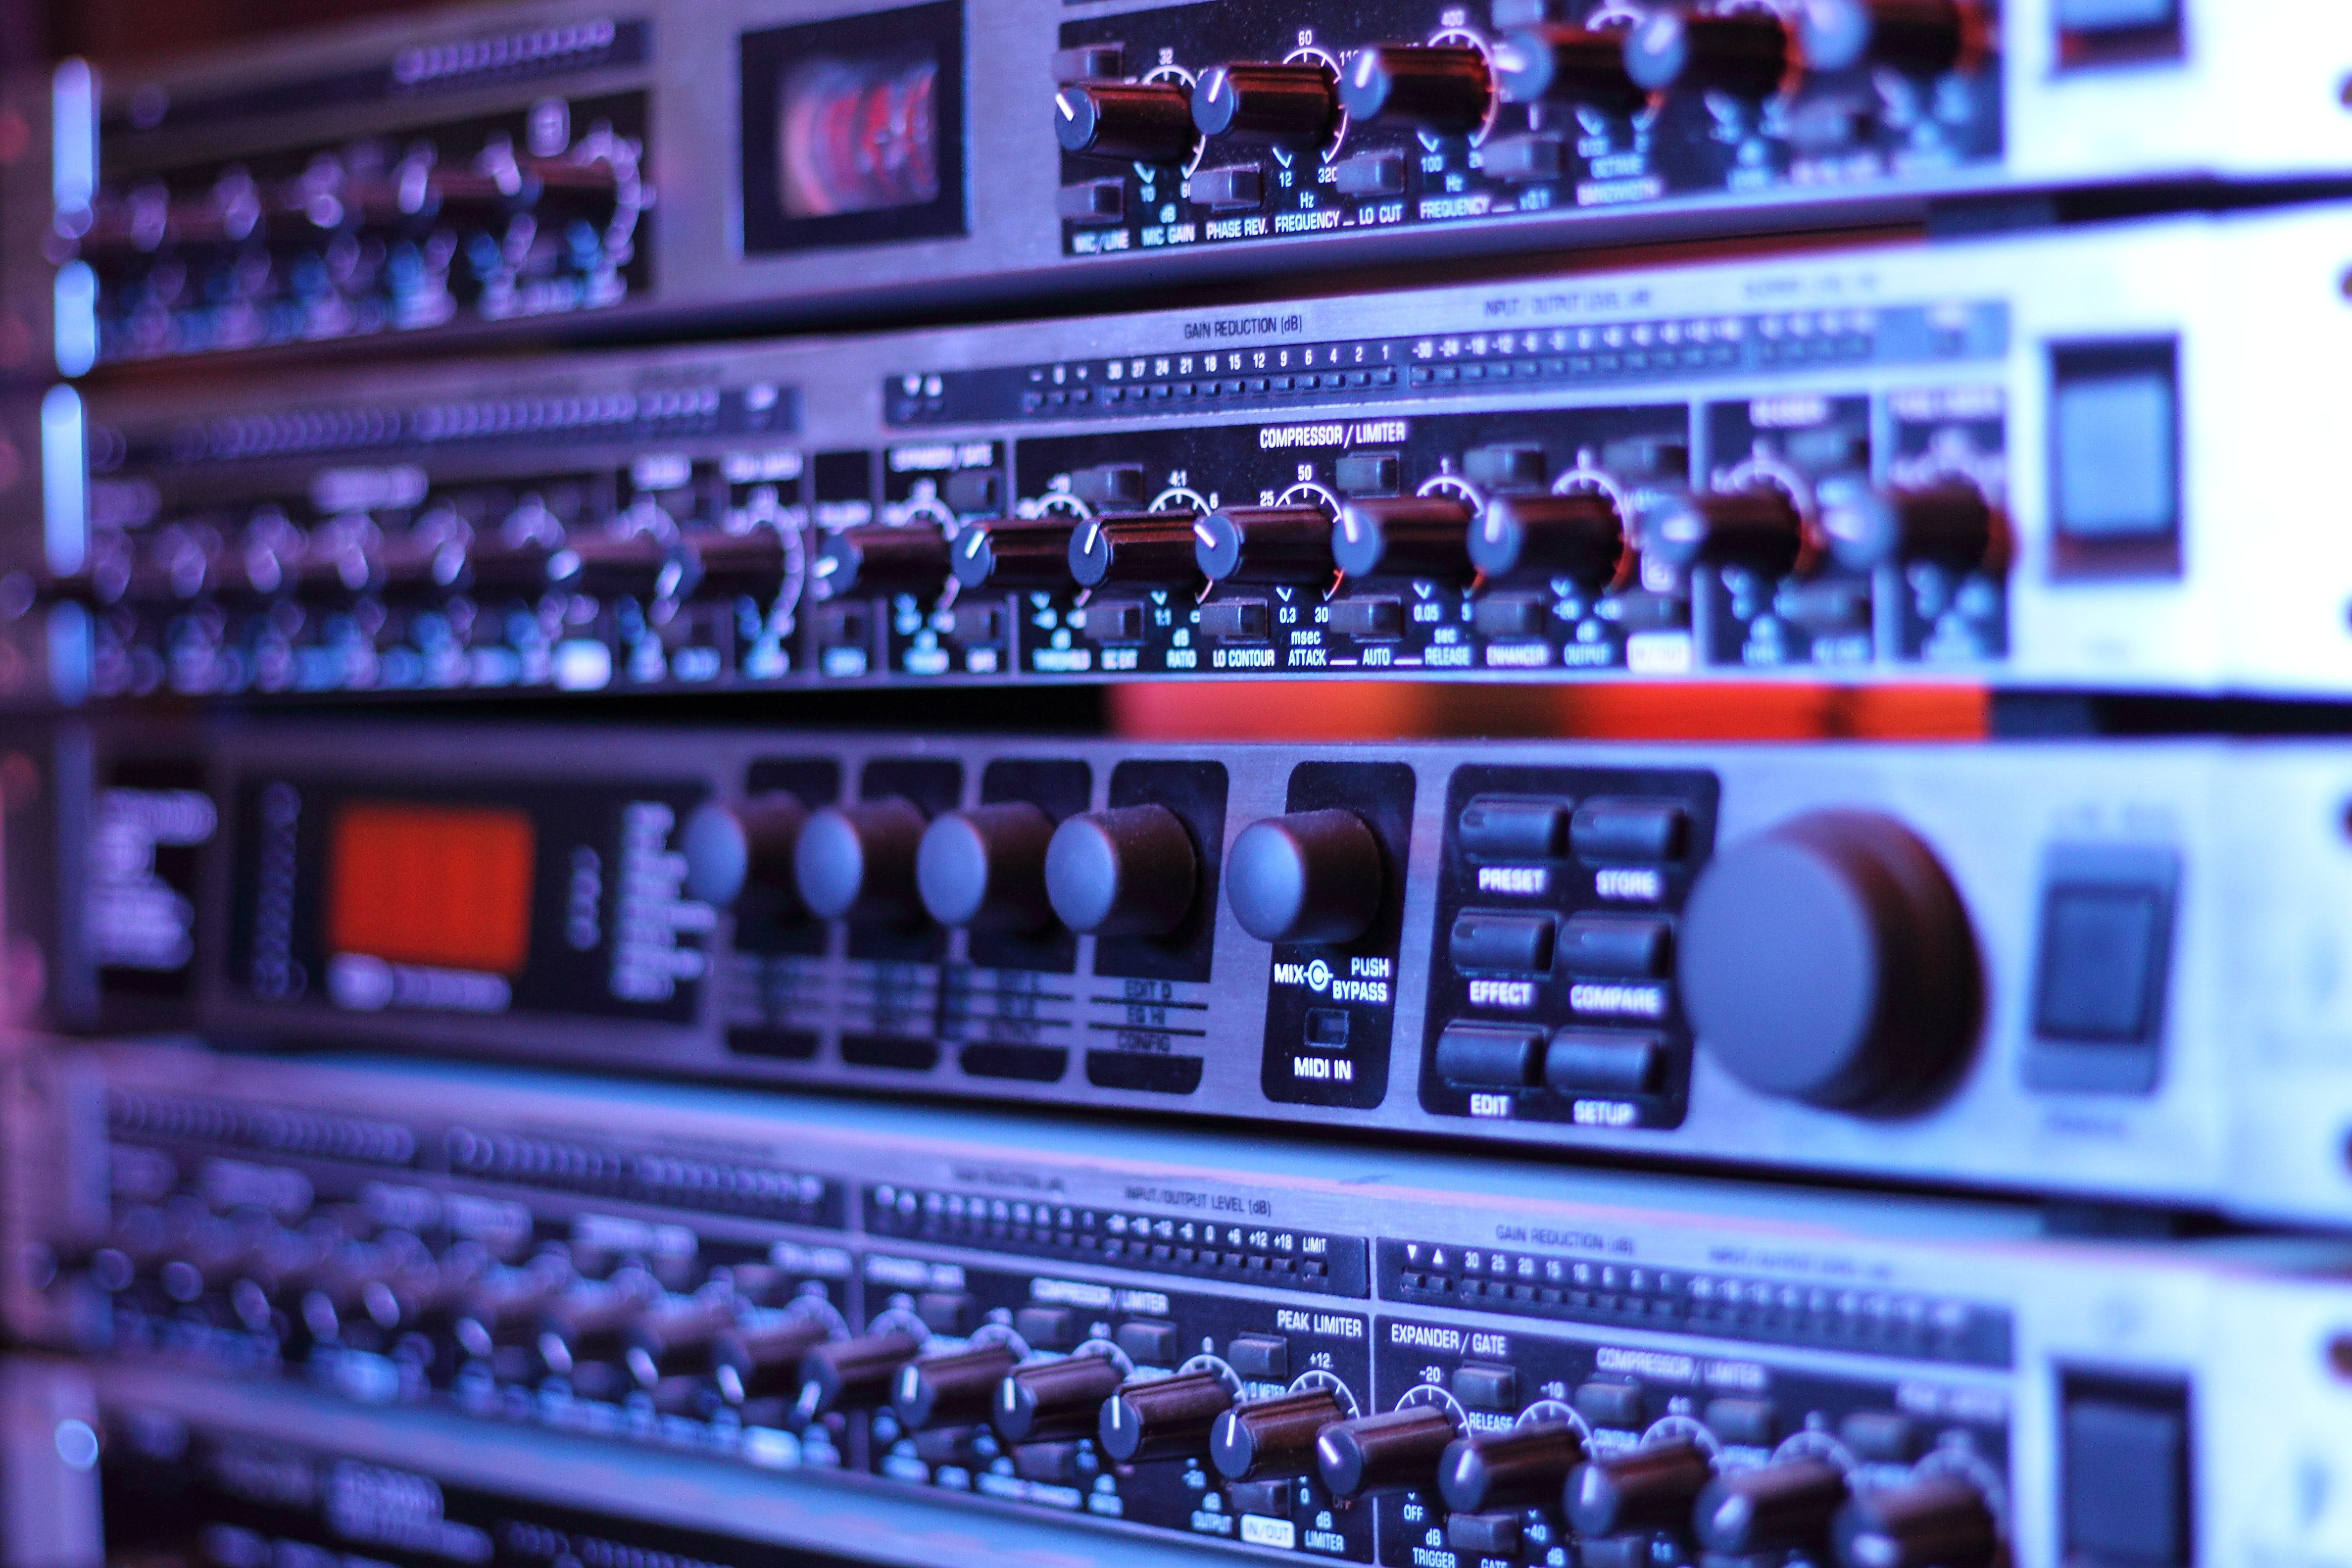 A close-up of numerous dials on a piece of recording equipment